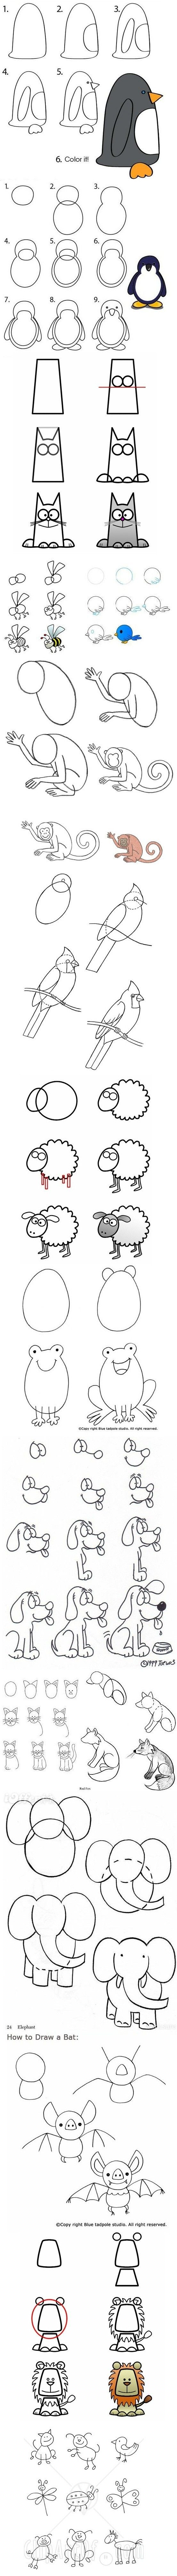 How To Draw Things To Teach Impress All Of The Little Kids In My